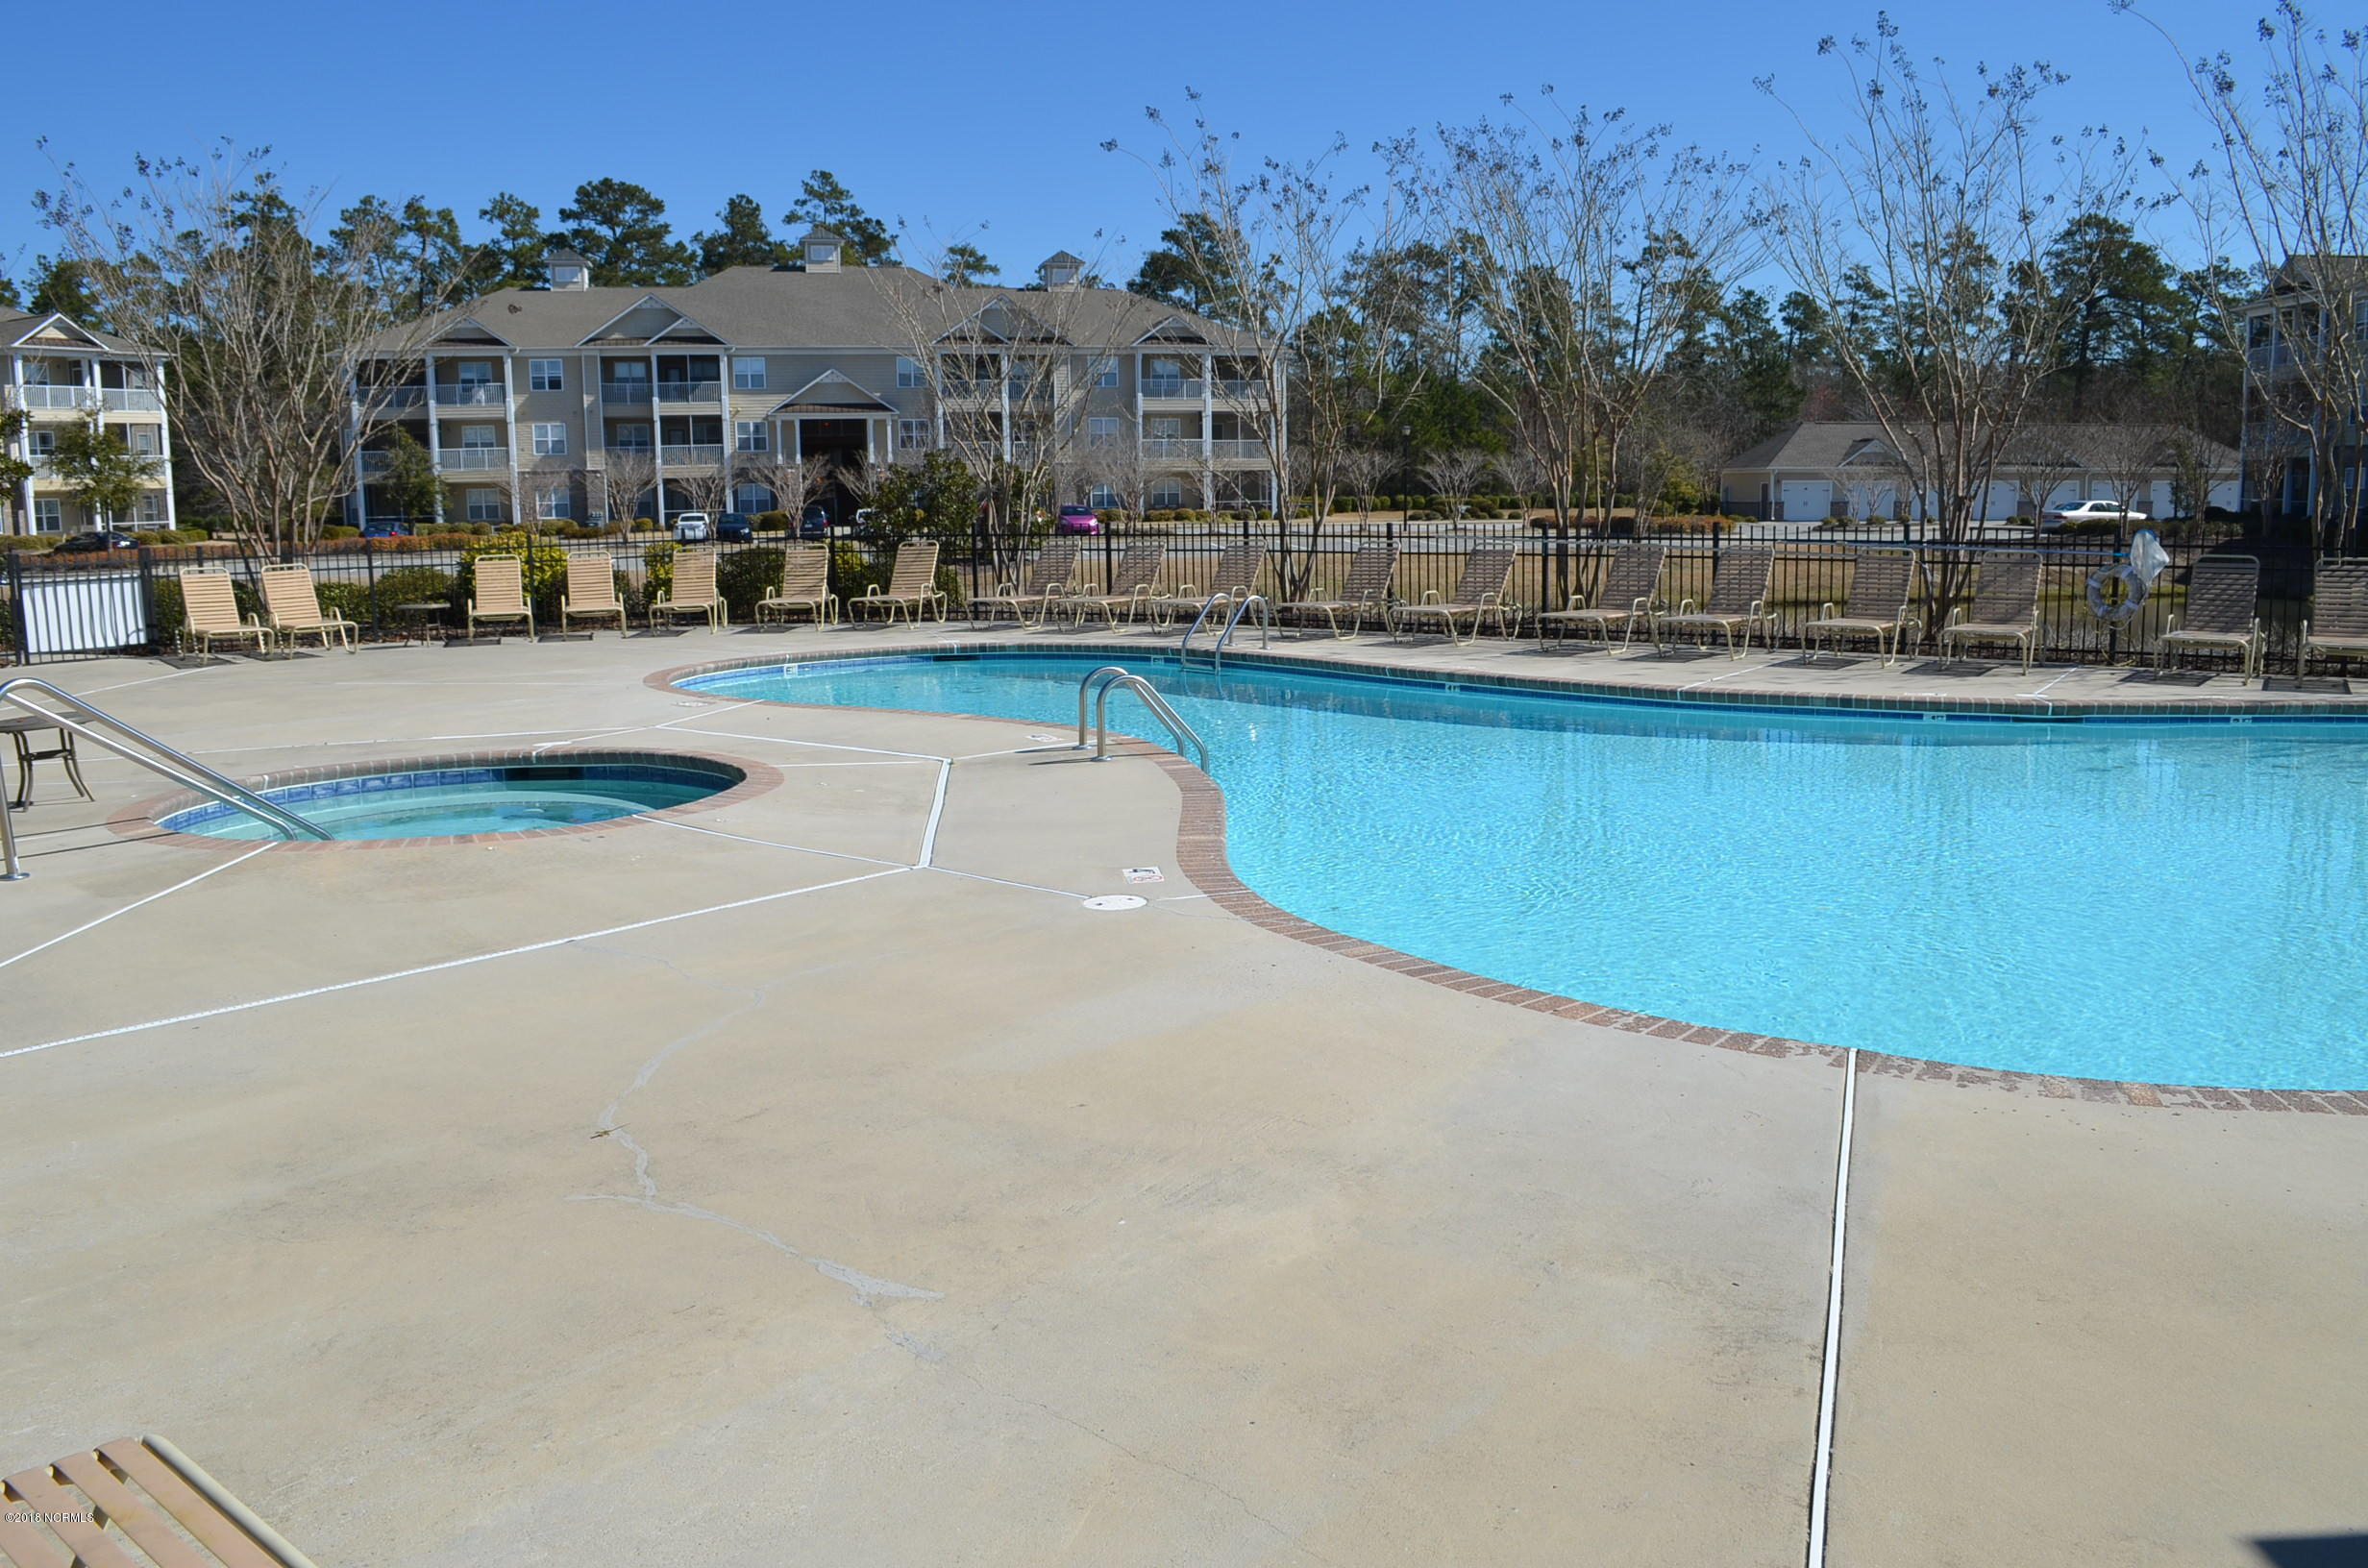 395 Crow Creek Drive, Calabash, North Carolina, 2 Bedrooms Bedrooms, 4 Rooms Rooms,2 BathroomsBathrooms,Condominium,For sale,Crow Creek,100101720